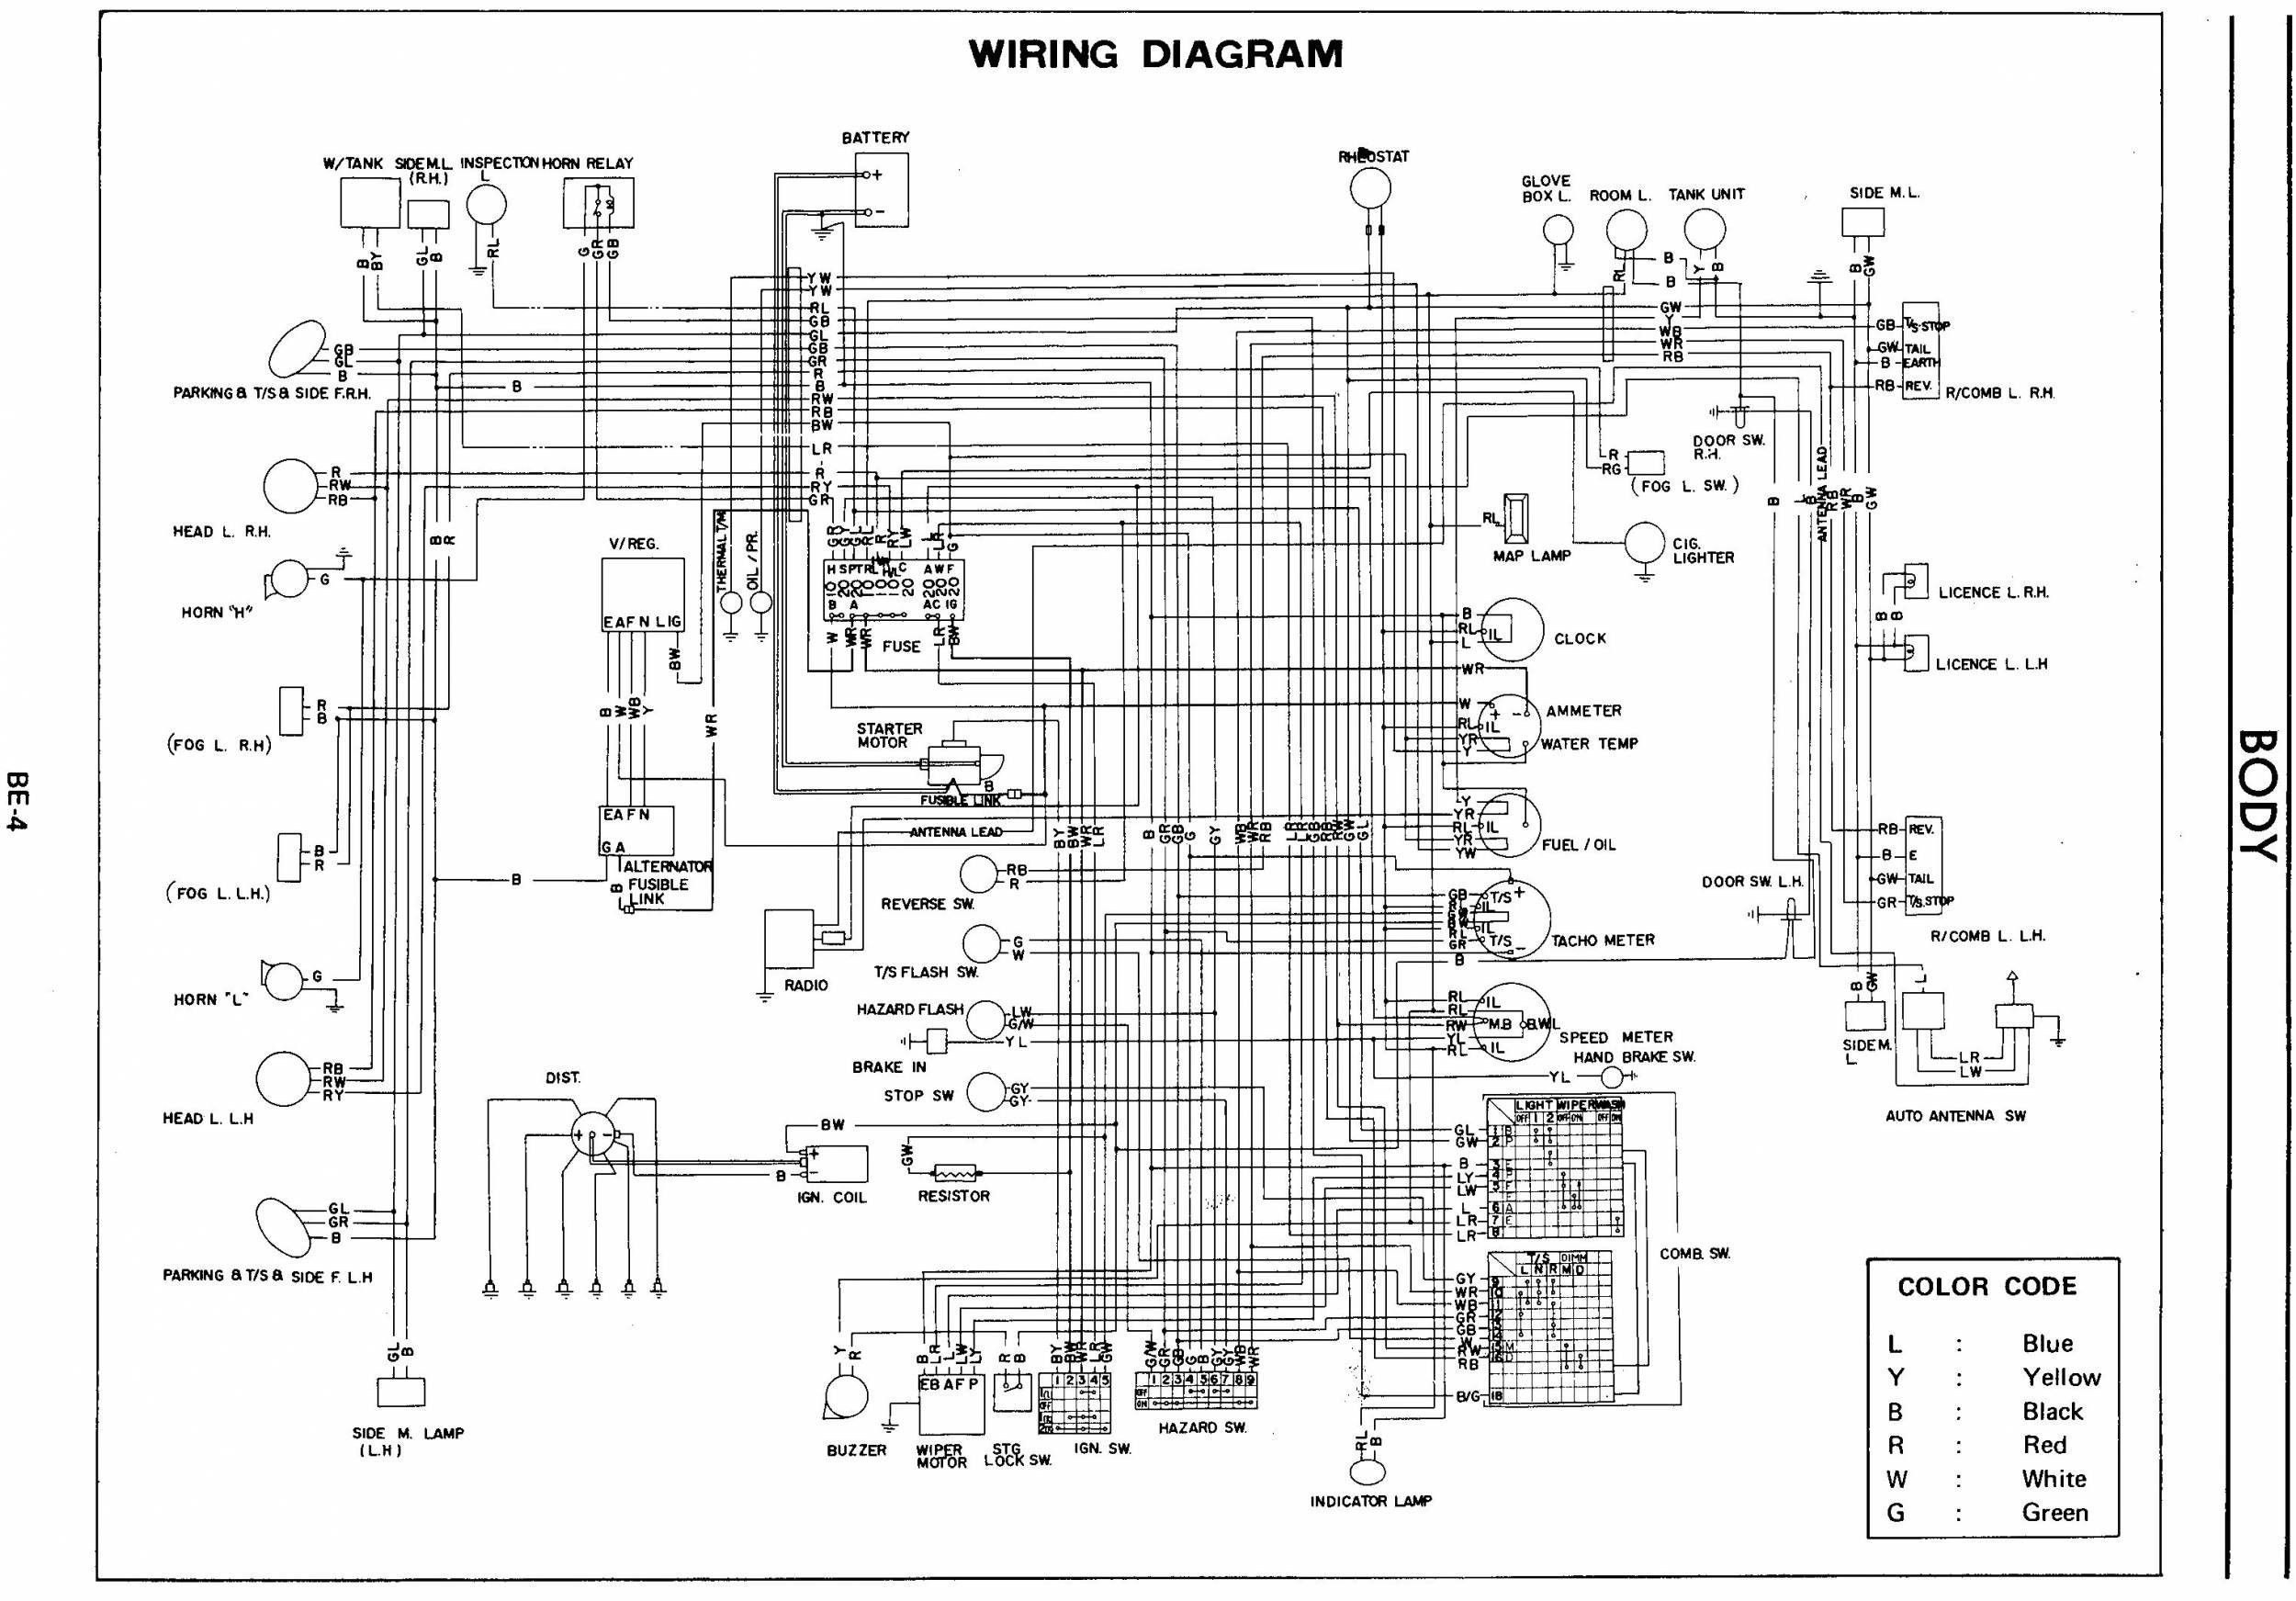 Mercedes Benz Radio Wiring Diagram